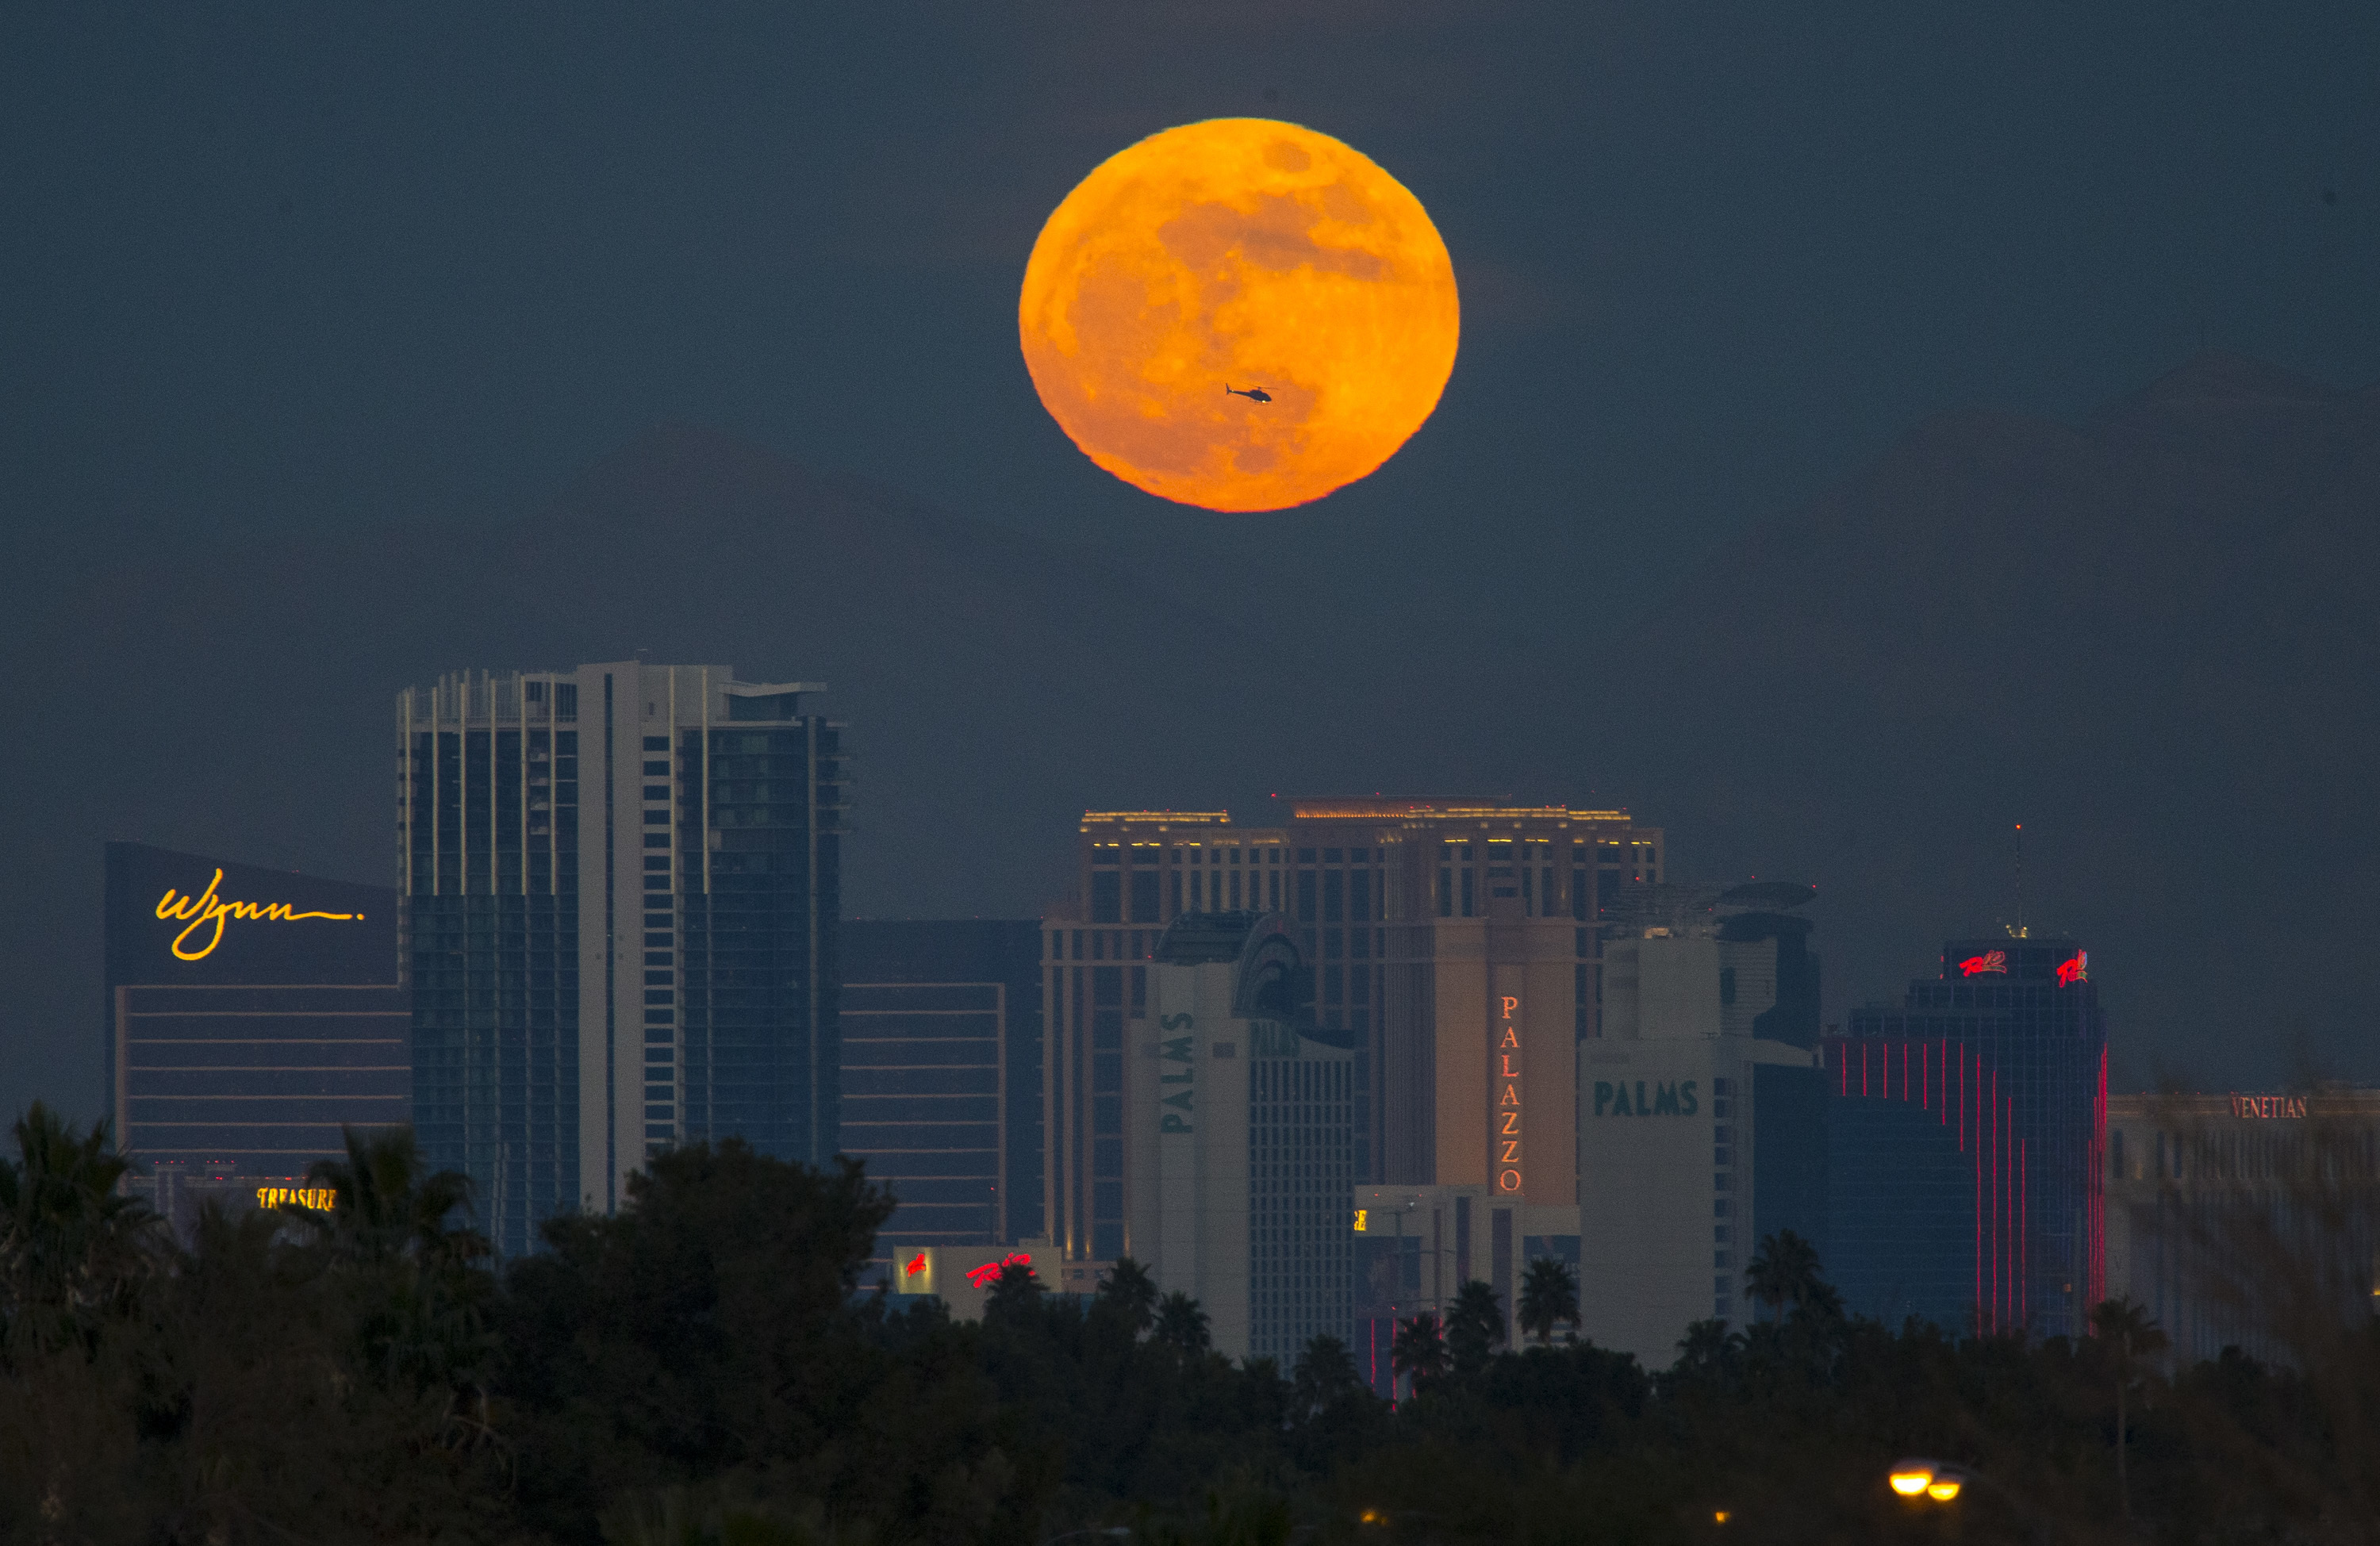 La superluna en Las Vegas, Estados Unidos (Richard Brian/Las Vegas Review-Journal via AP)